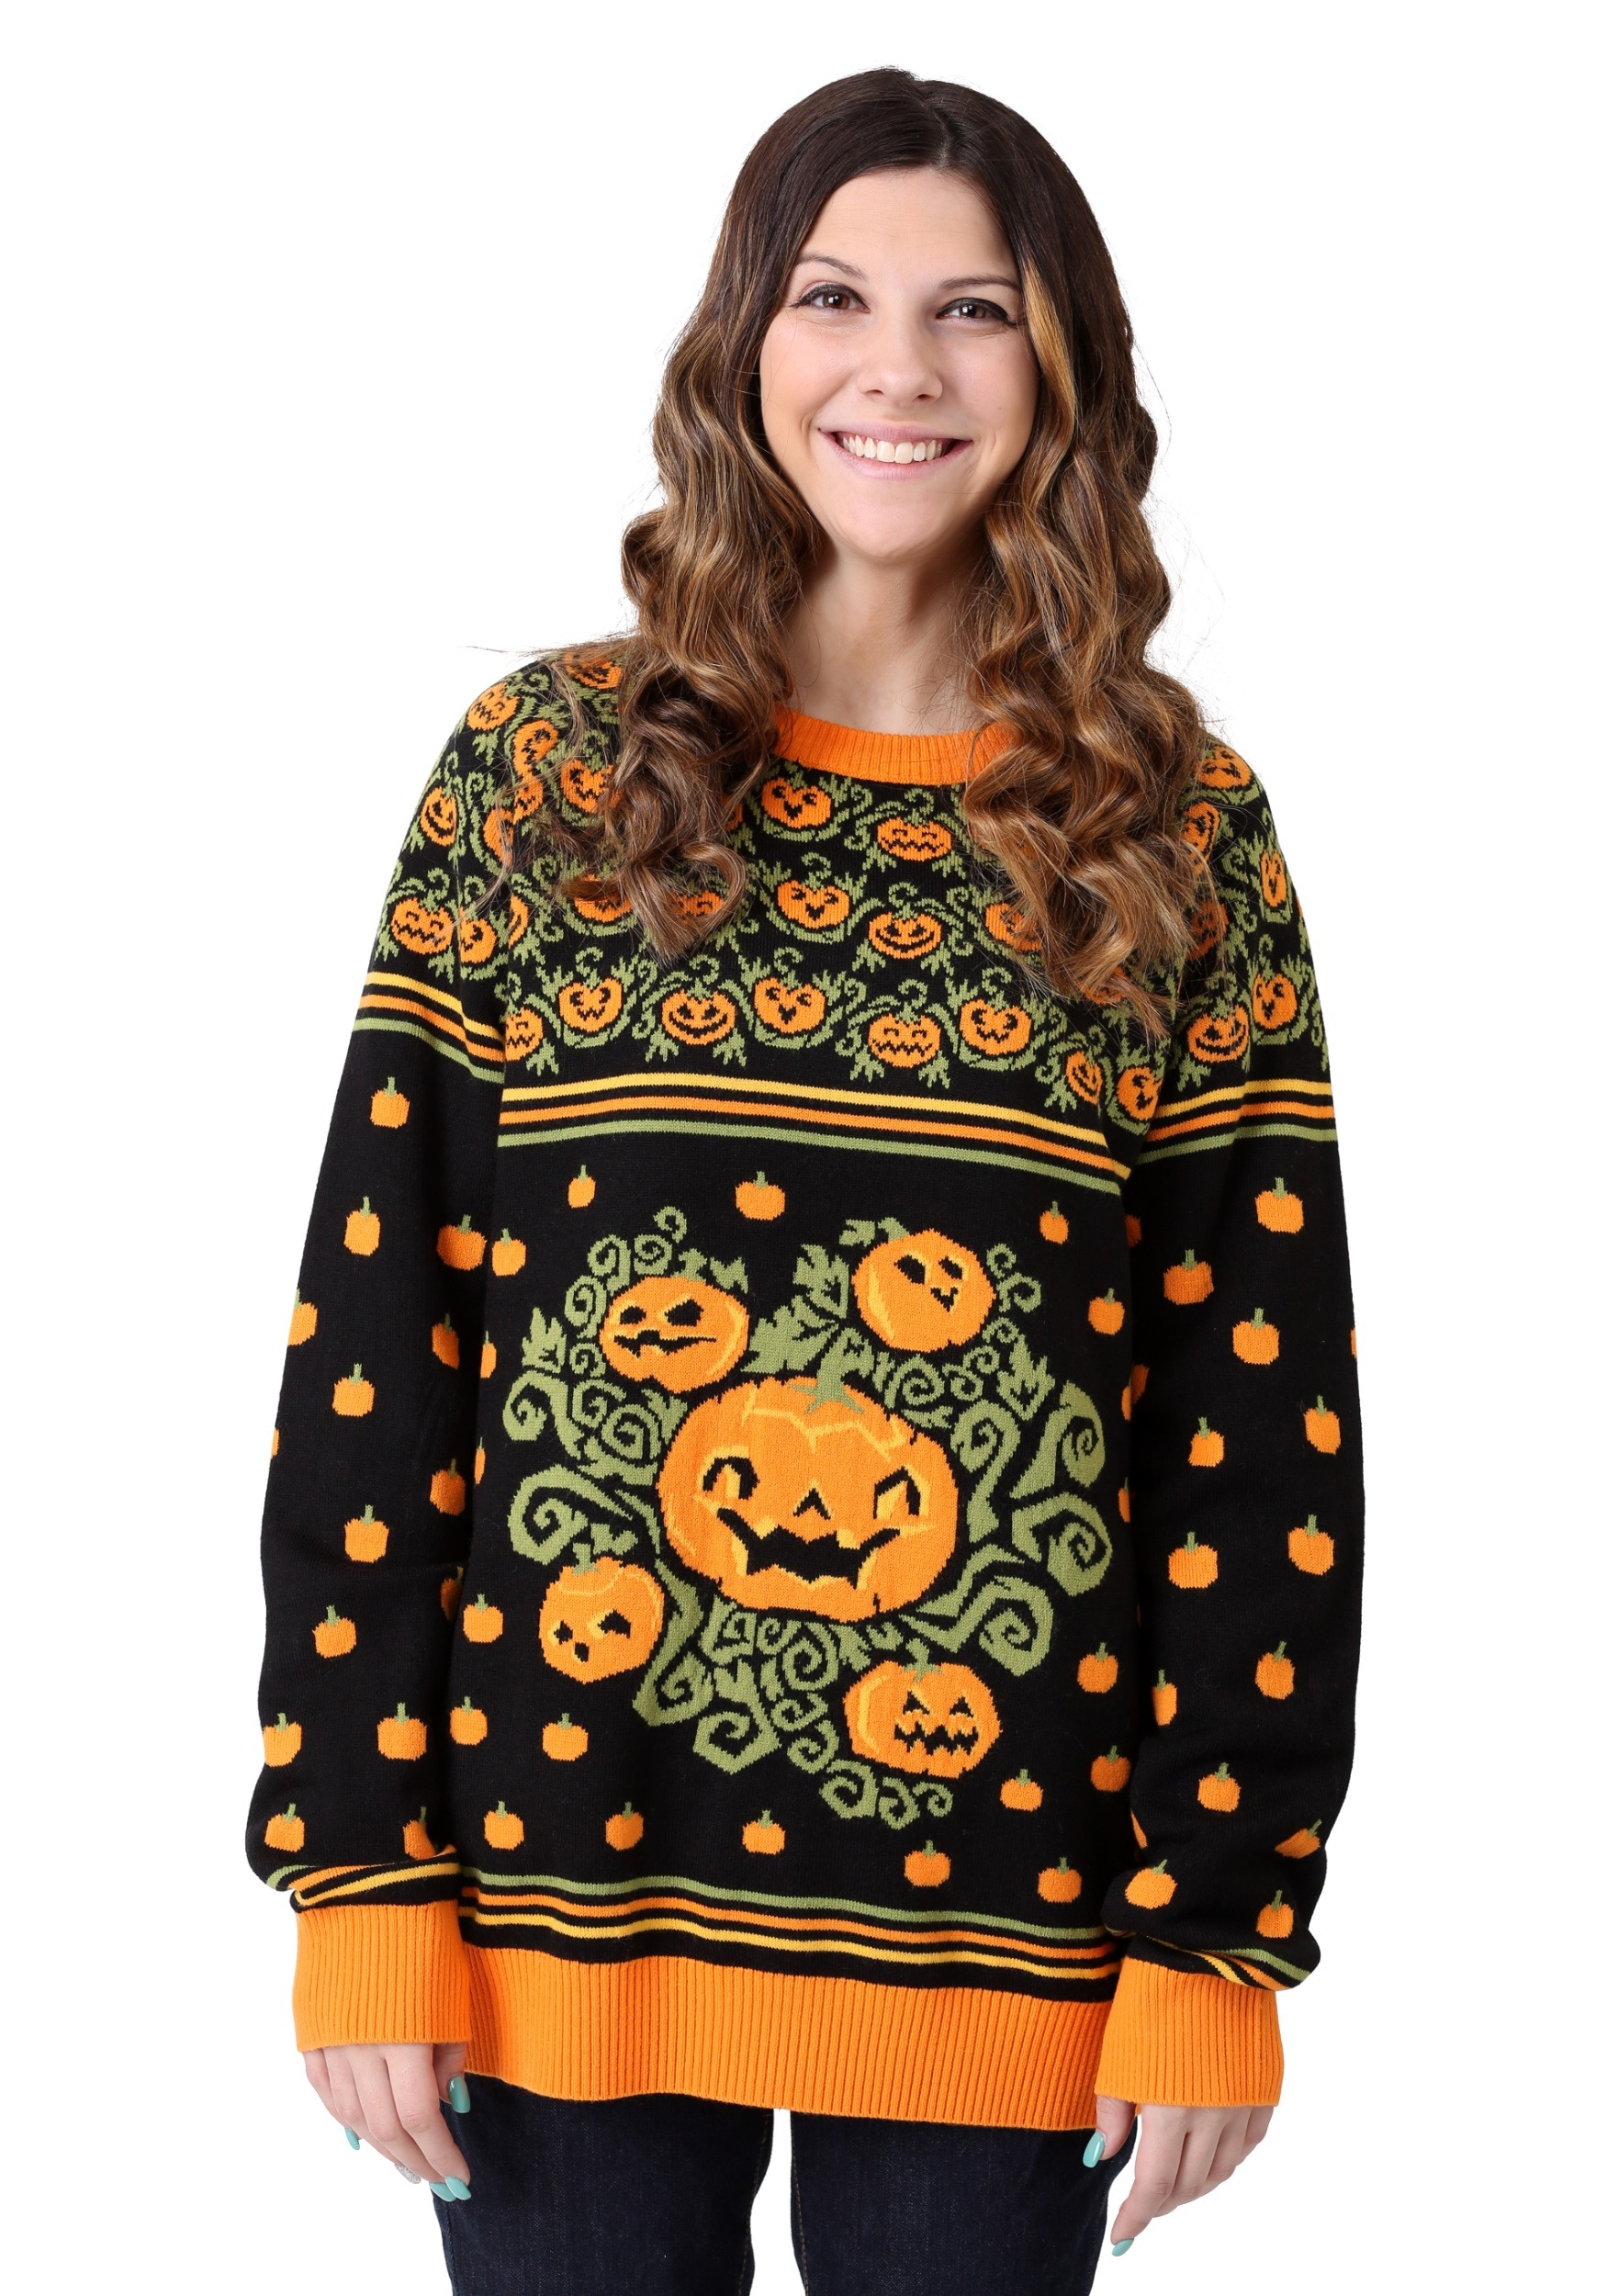 Pumpkin Patch Ugly Halloween Sweater for Adults   Exclusive